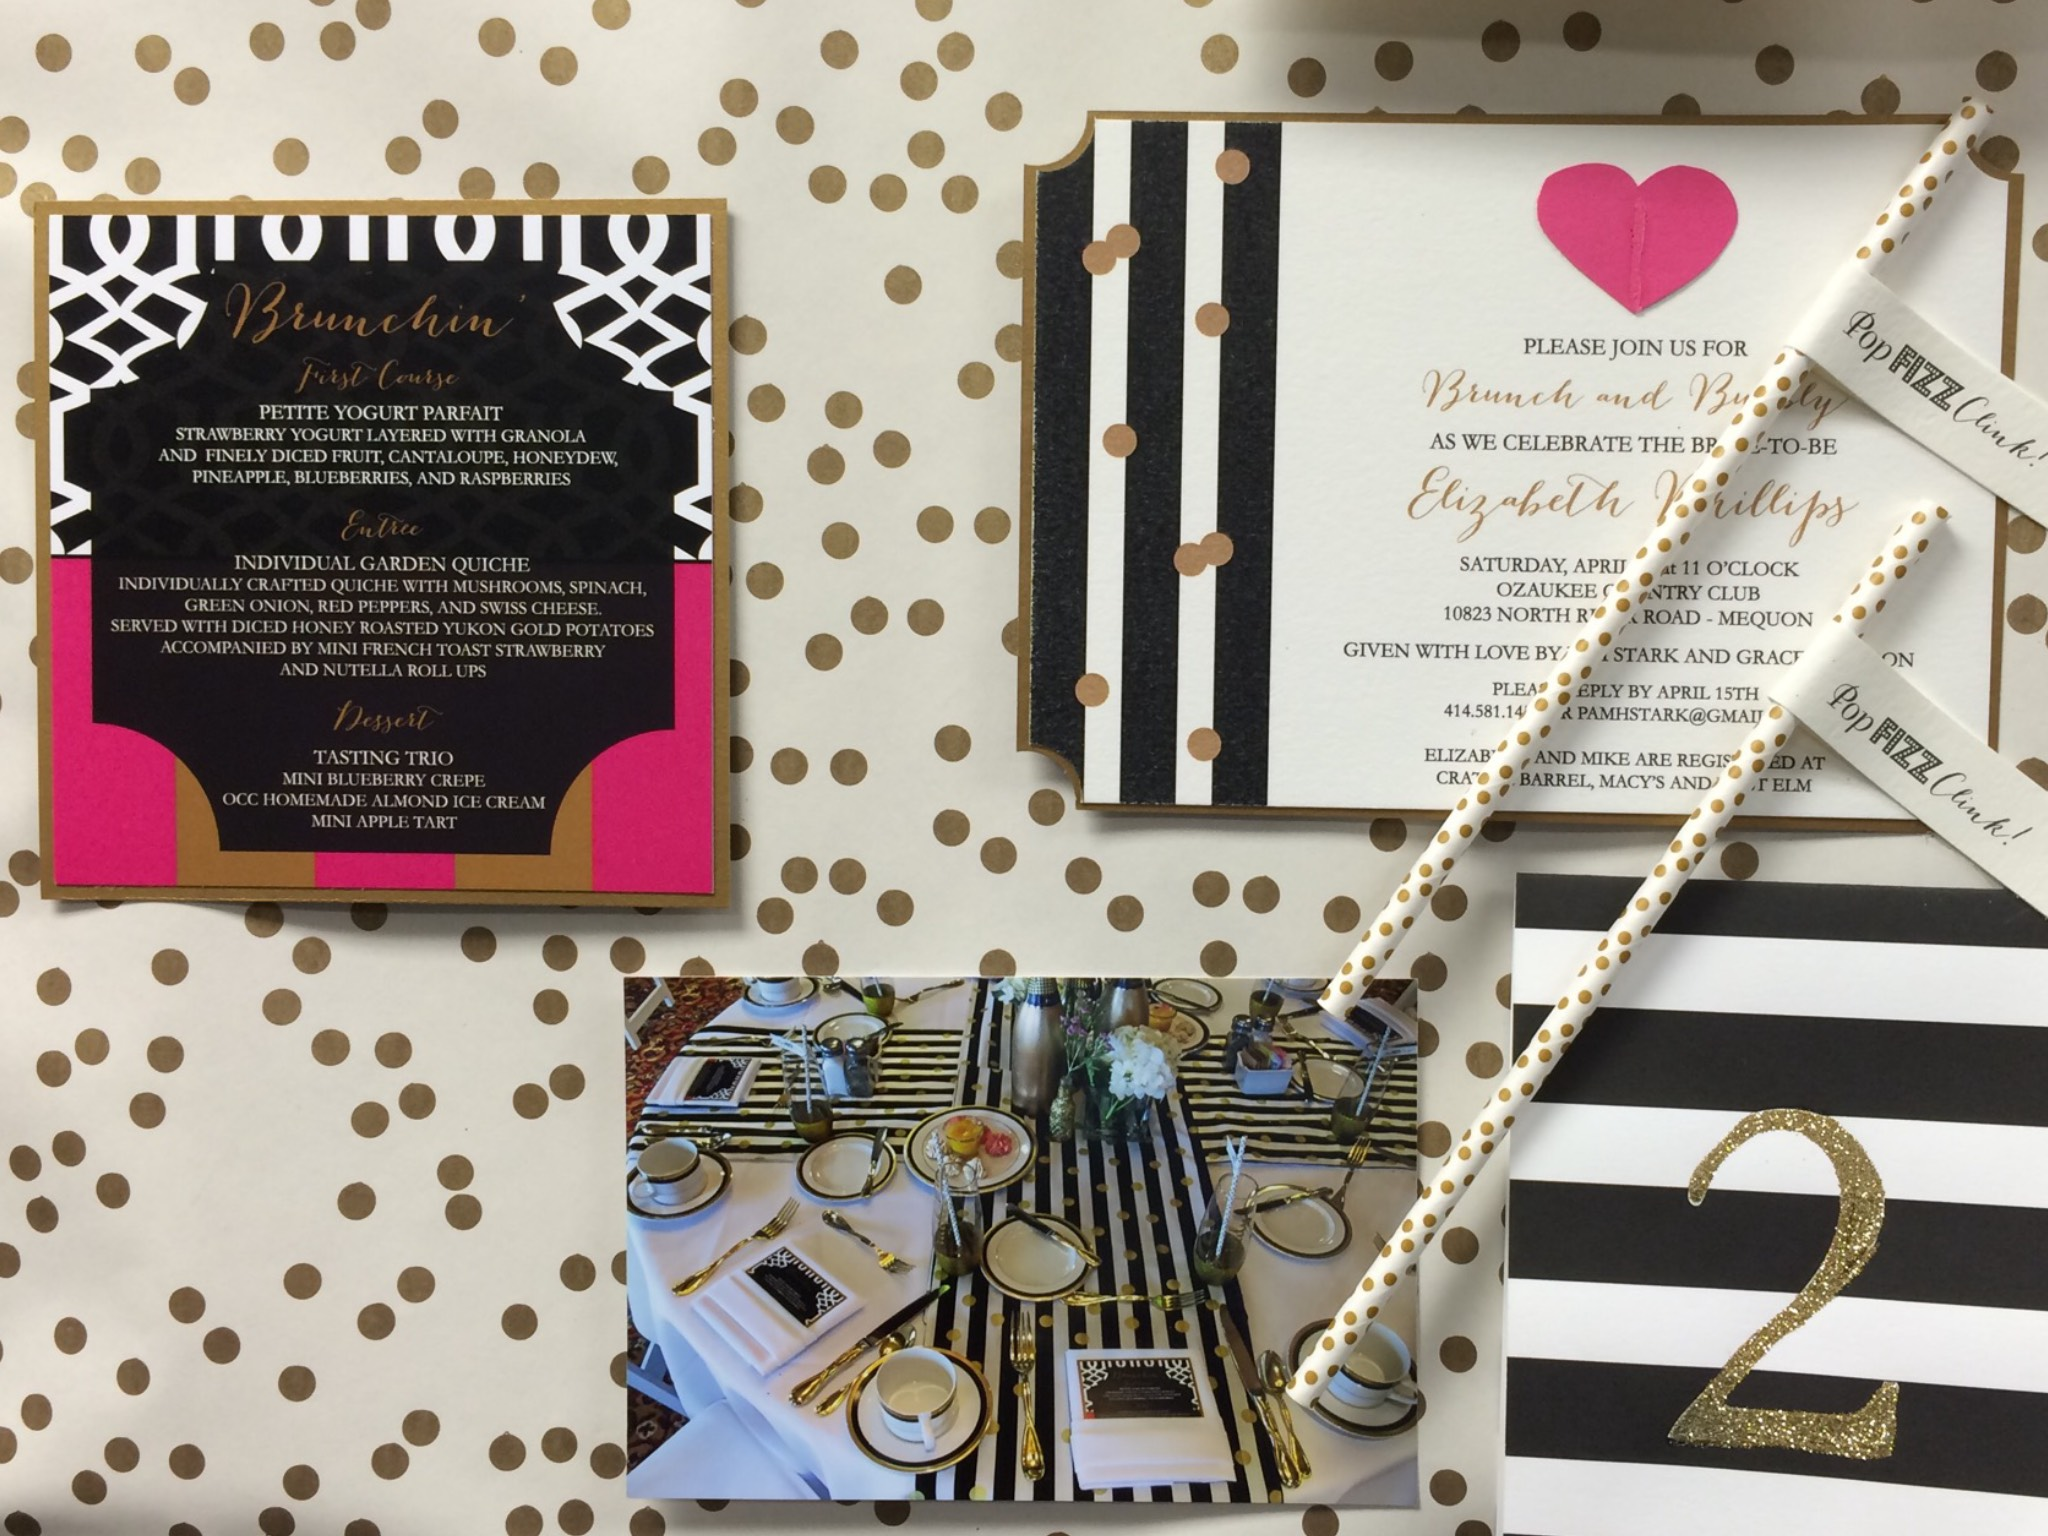 KATE SPADE INSPIRED WEDDING SHOWER.  INVITATIONS WERE SENT IN PRETTY BOXES WITH LOTS OF CONFETTI, POP - FIZZ - CLINK!  SPEAKING OF DETAILS, THIS HOSTESS DIDN'T MISS ONE.